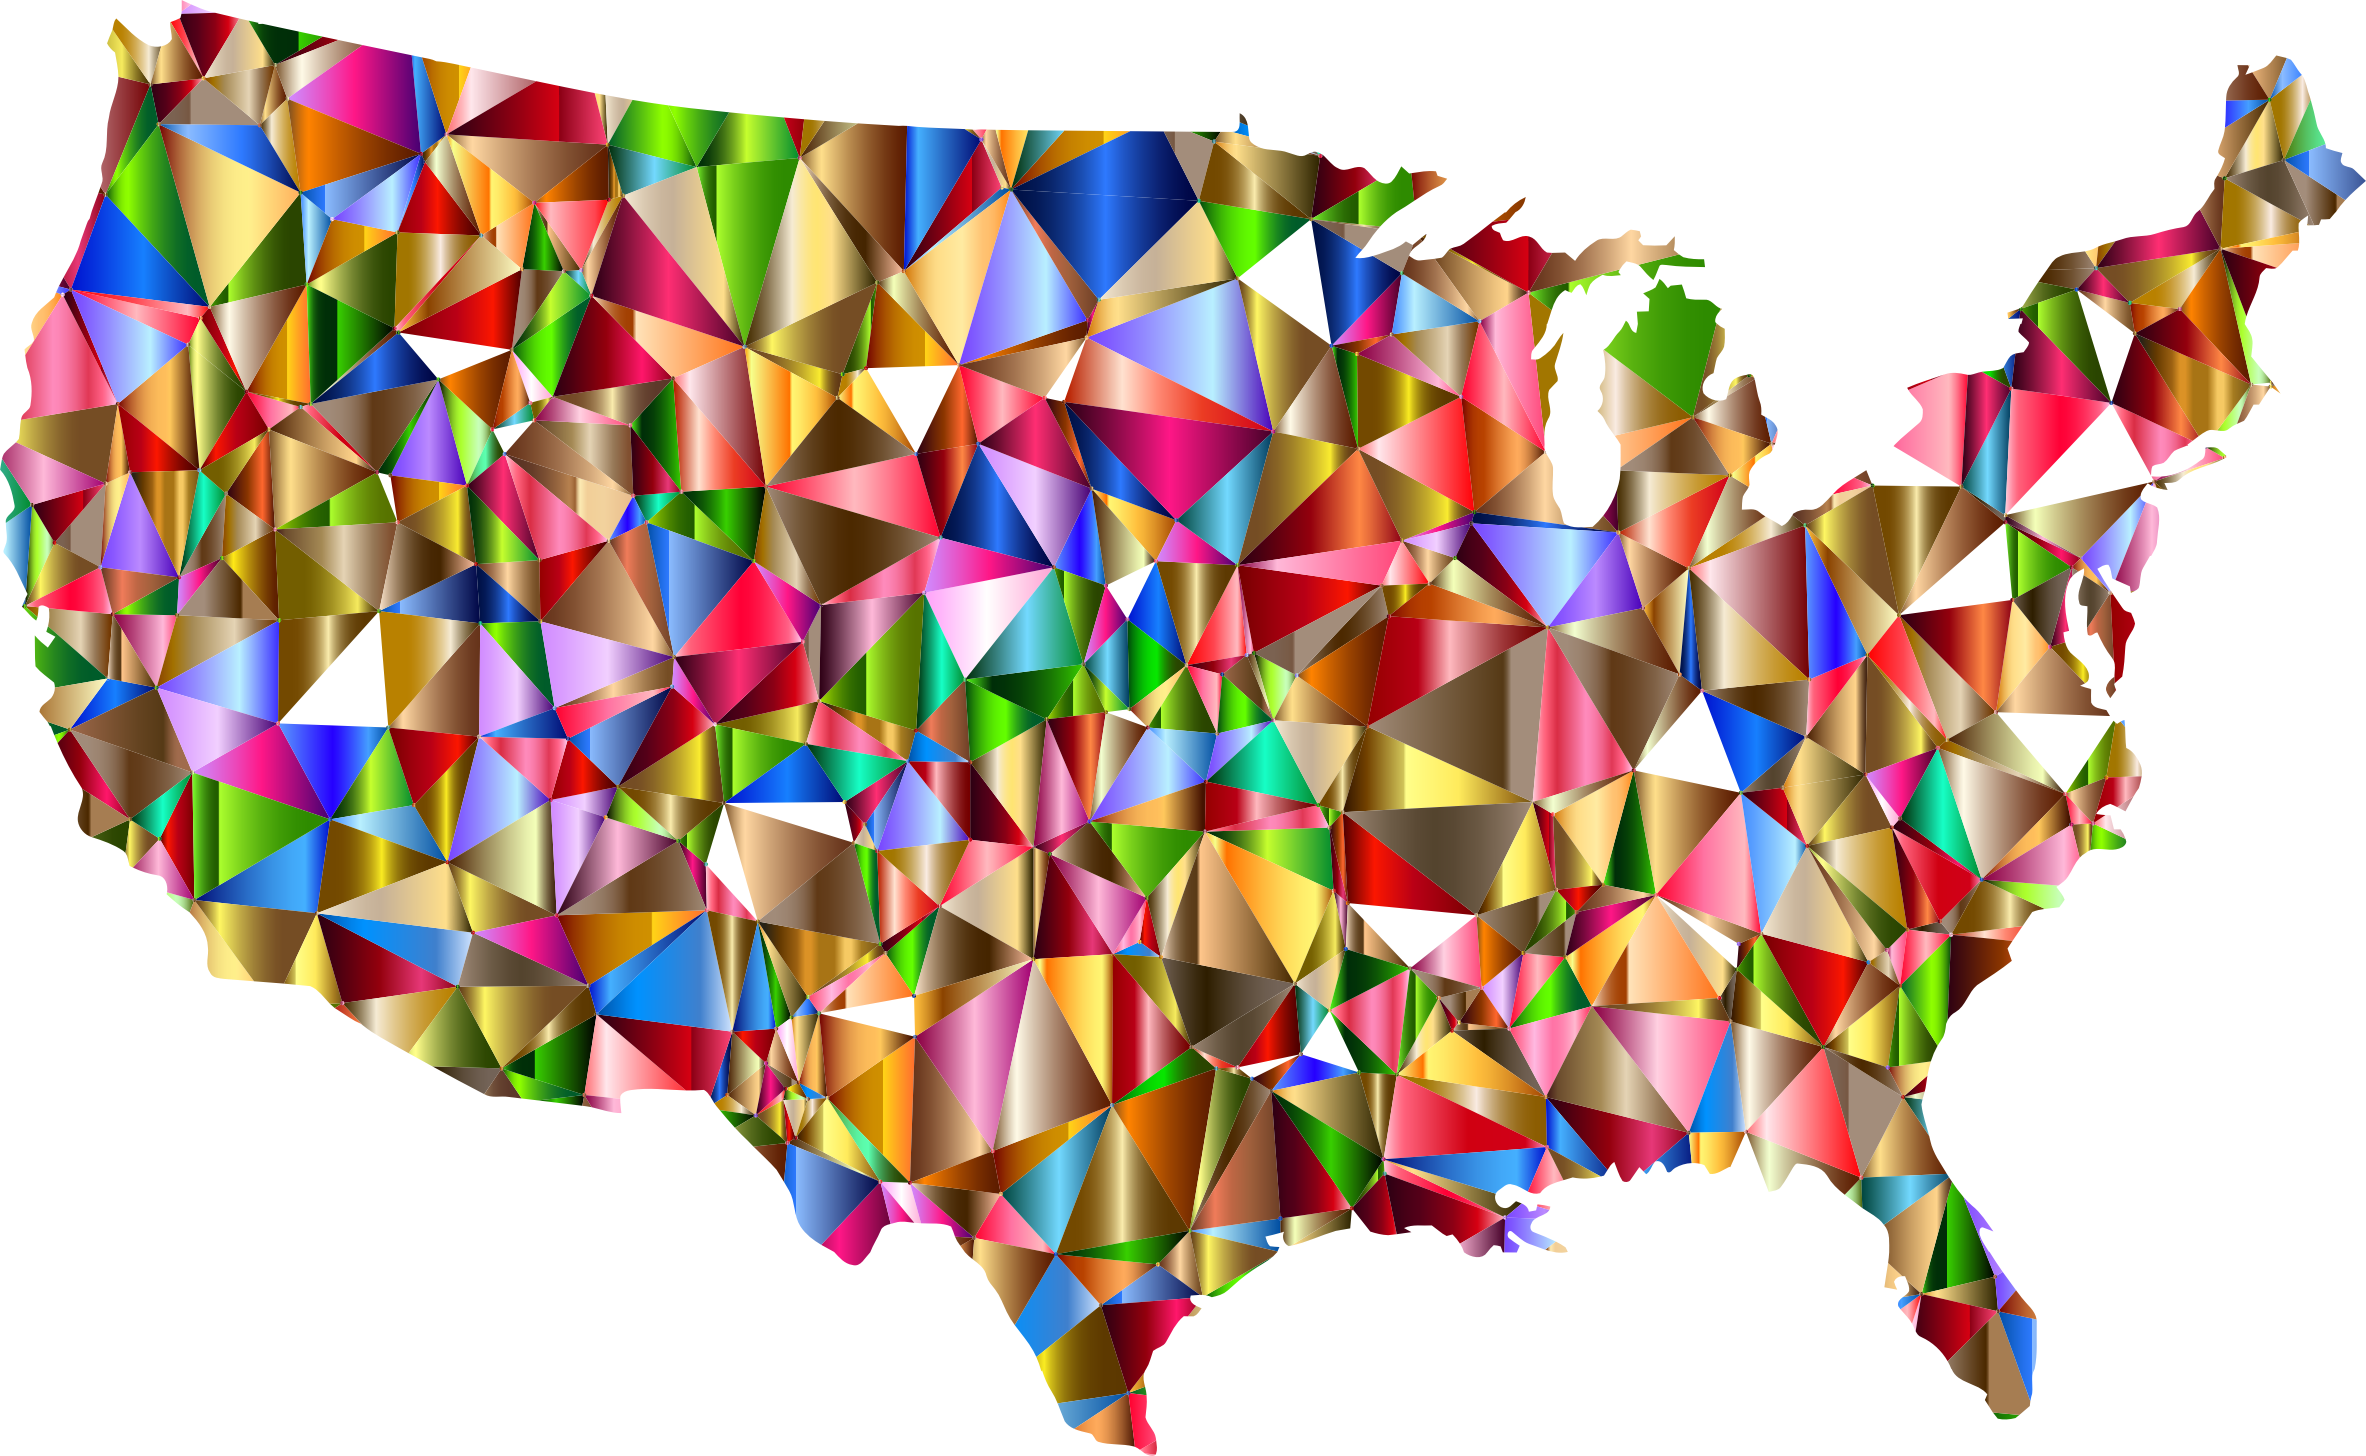 Vector colors transparent background. Vibrant colorful low poly